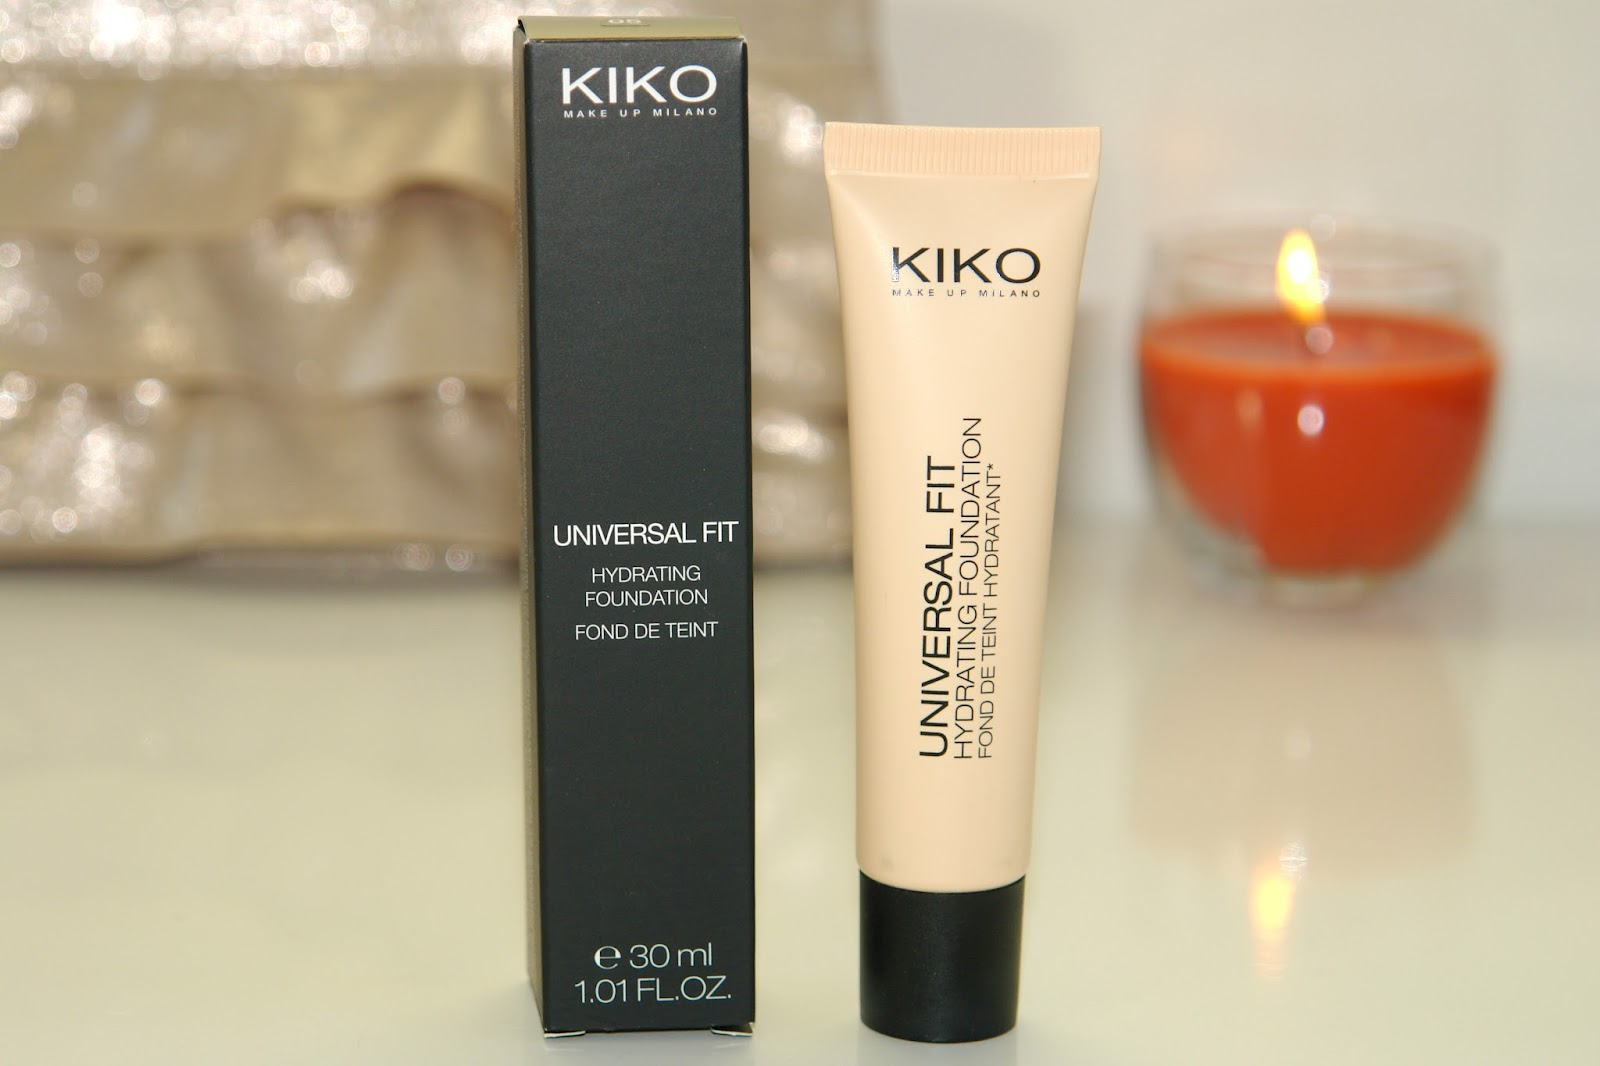 KIKO Universal Fit Hydrating Foundation review, foundation, KIKO, make up, review, beauty blogger